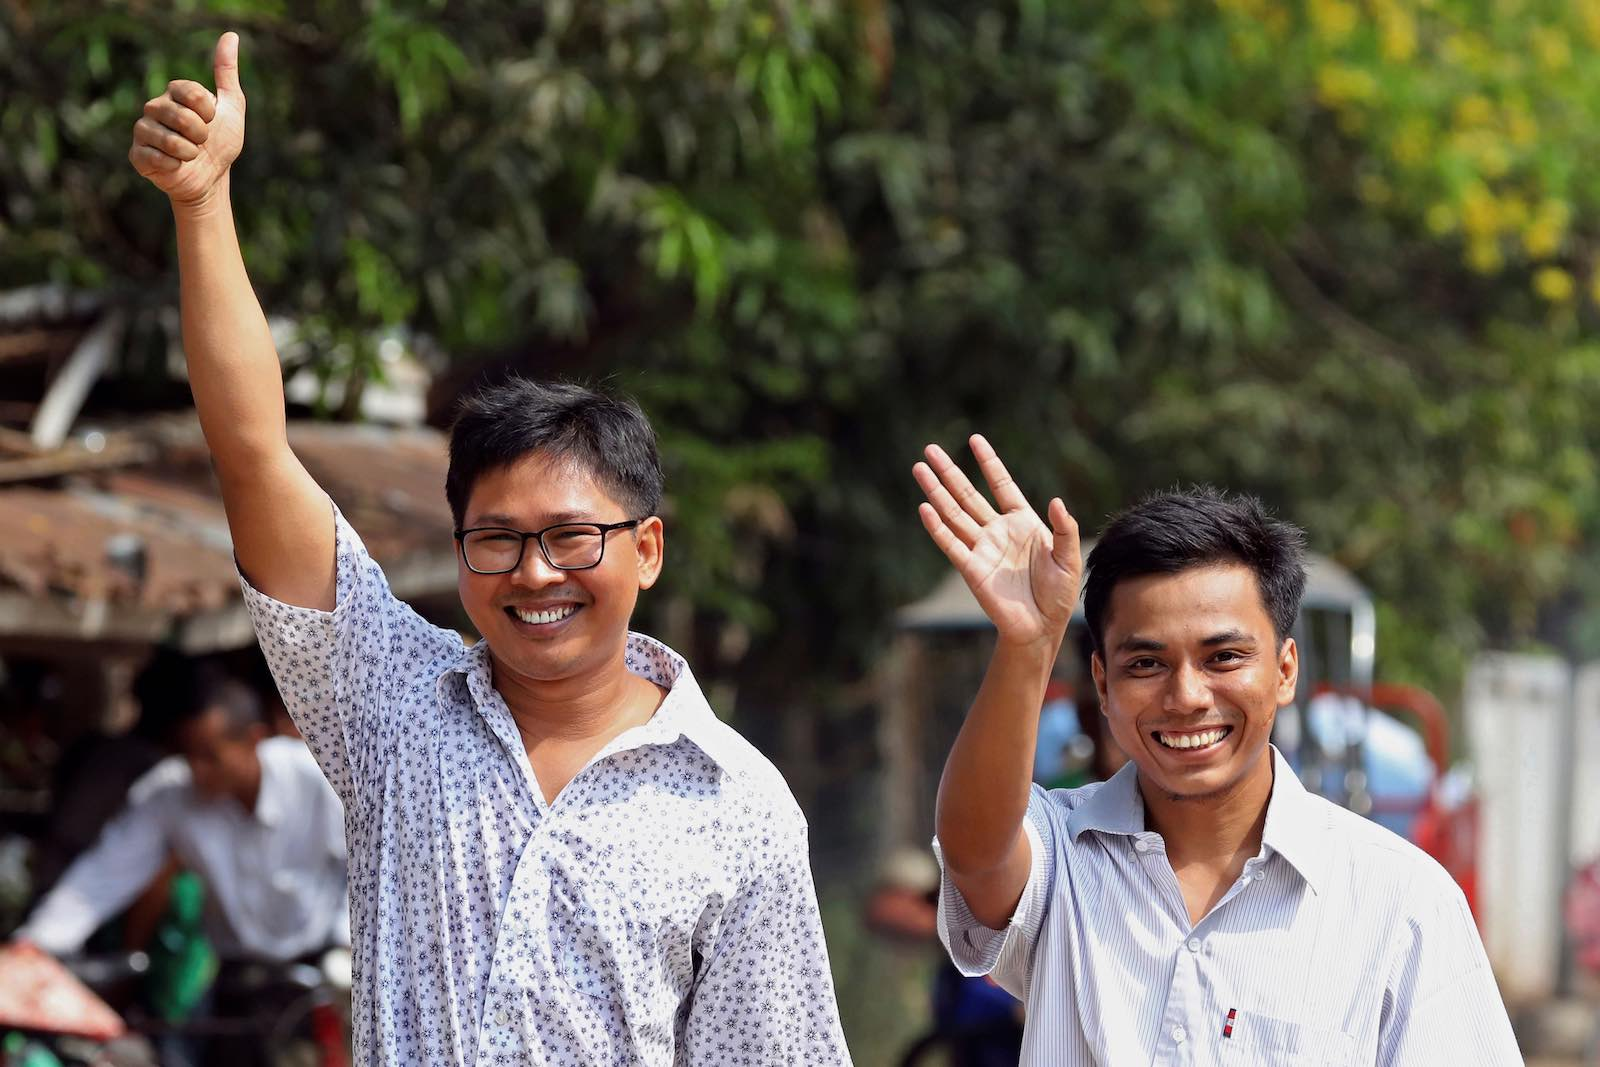 Reuters journalists Wa Lone and Kyaw Soe Oo walk free from Insein prison (Photo: Ann Wang via Getty)